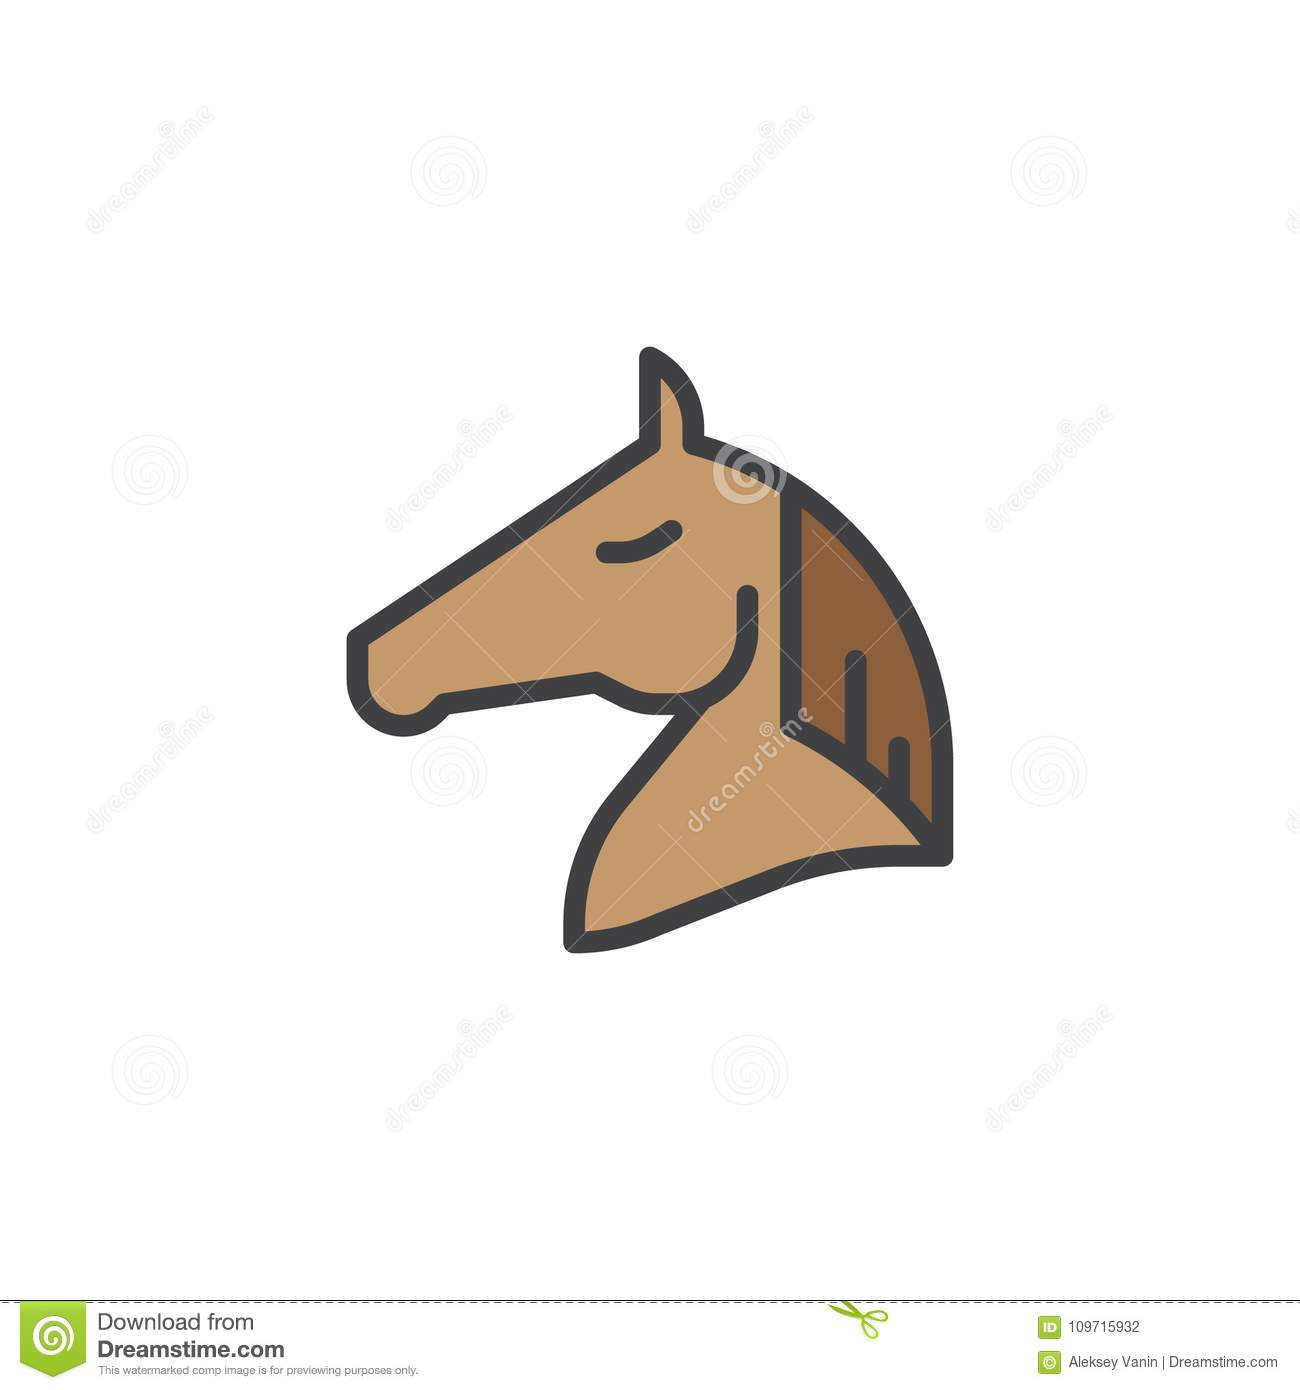 Horse Head Filled Outline Icon Stock Vector Illustration